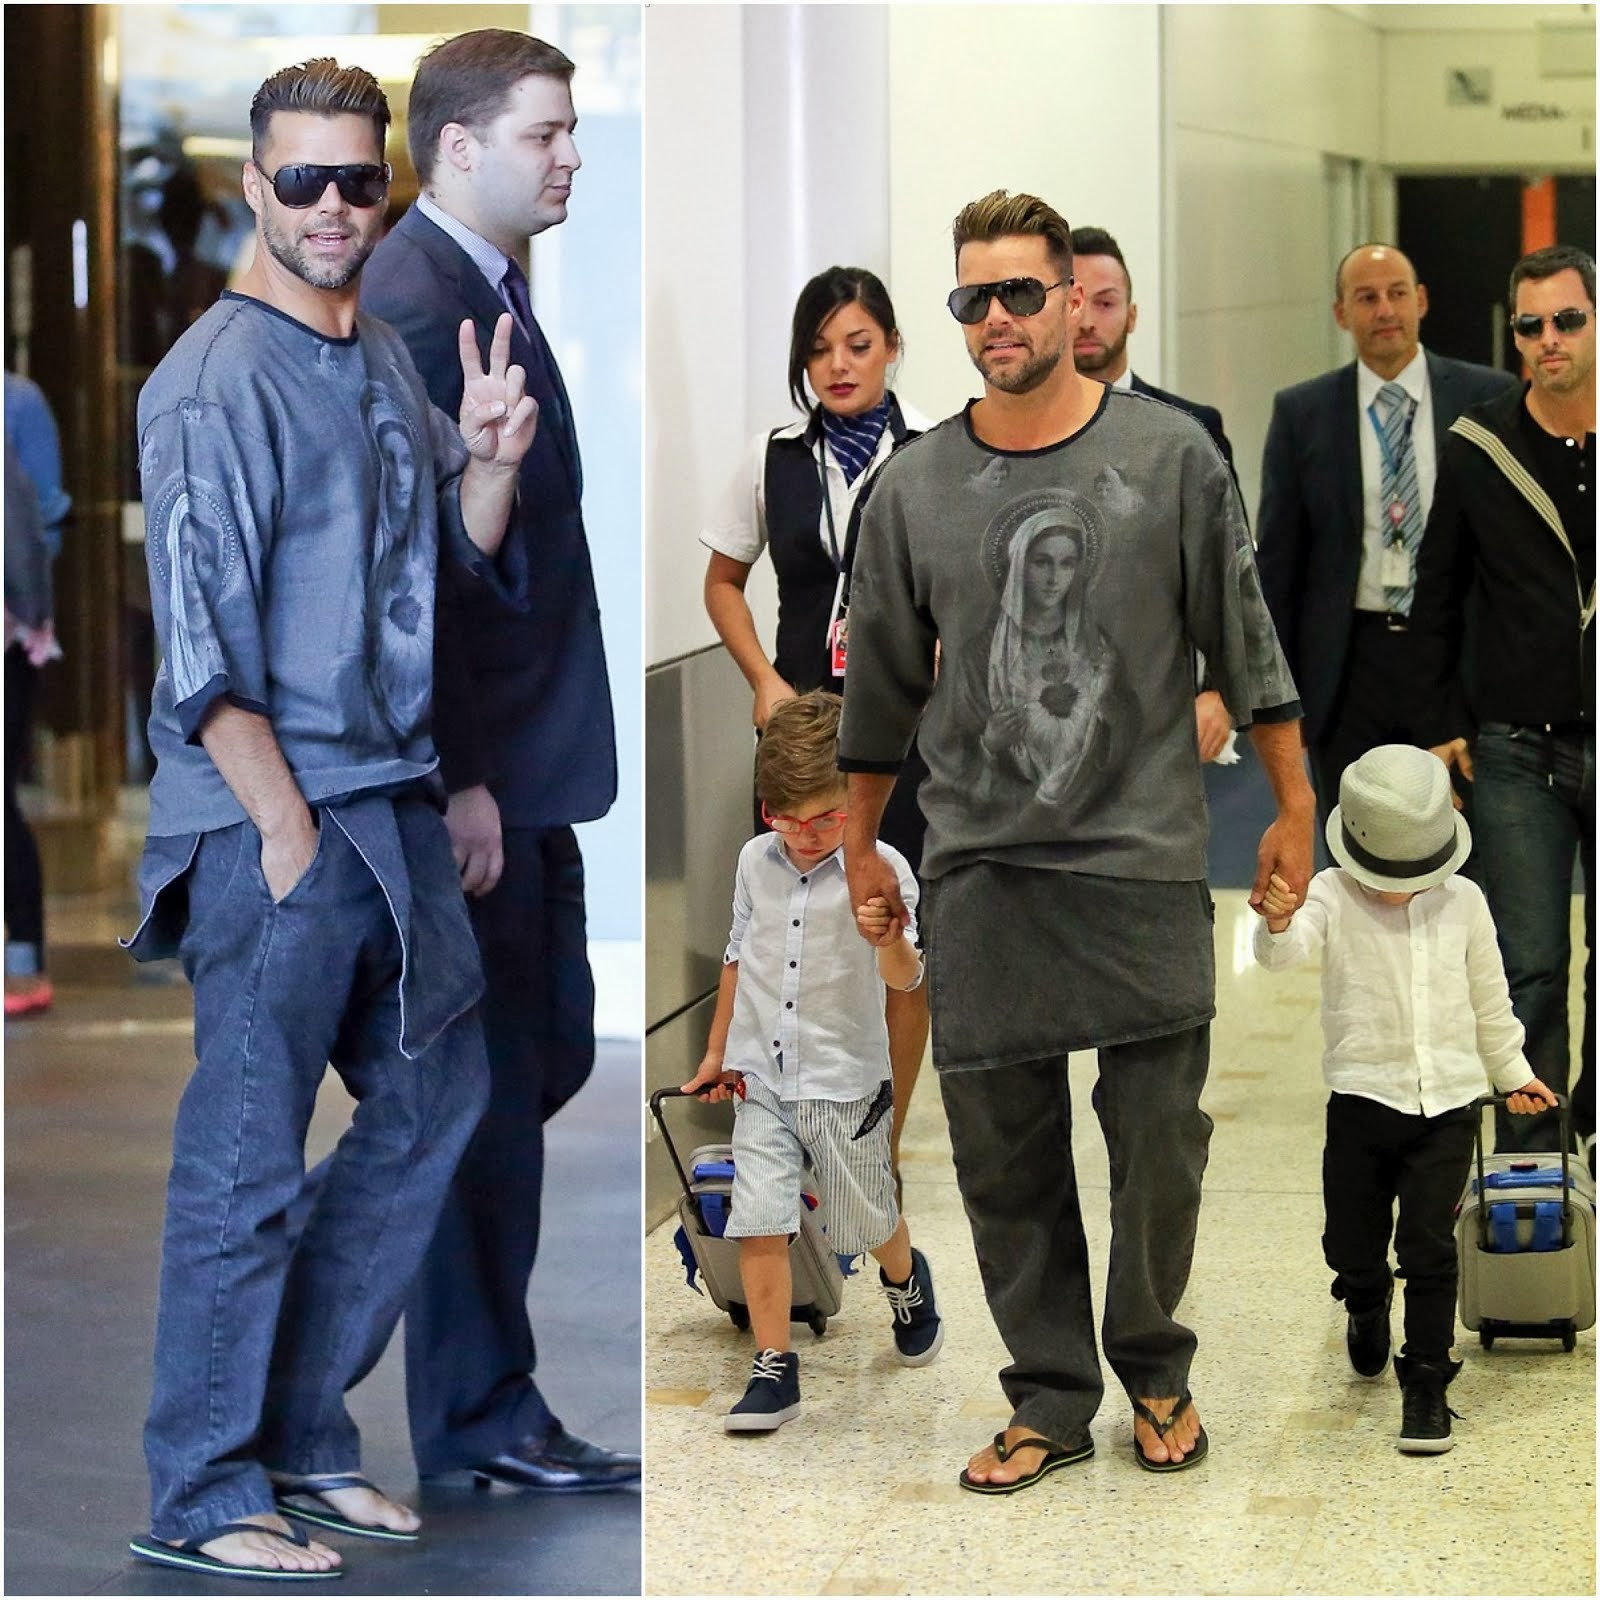 Ricky Martin in Dolce & Gabbana - Sydney International Airport / 00O00 Menswear Blog oooooh 000000h London